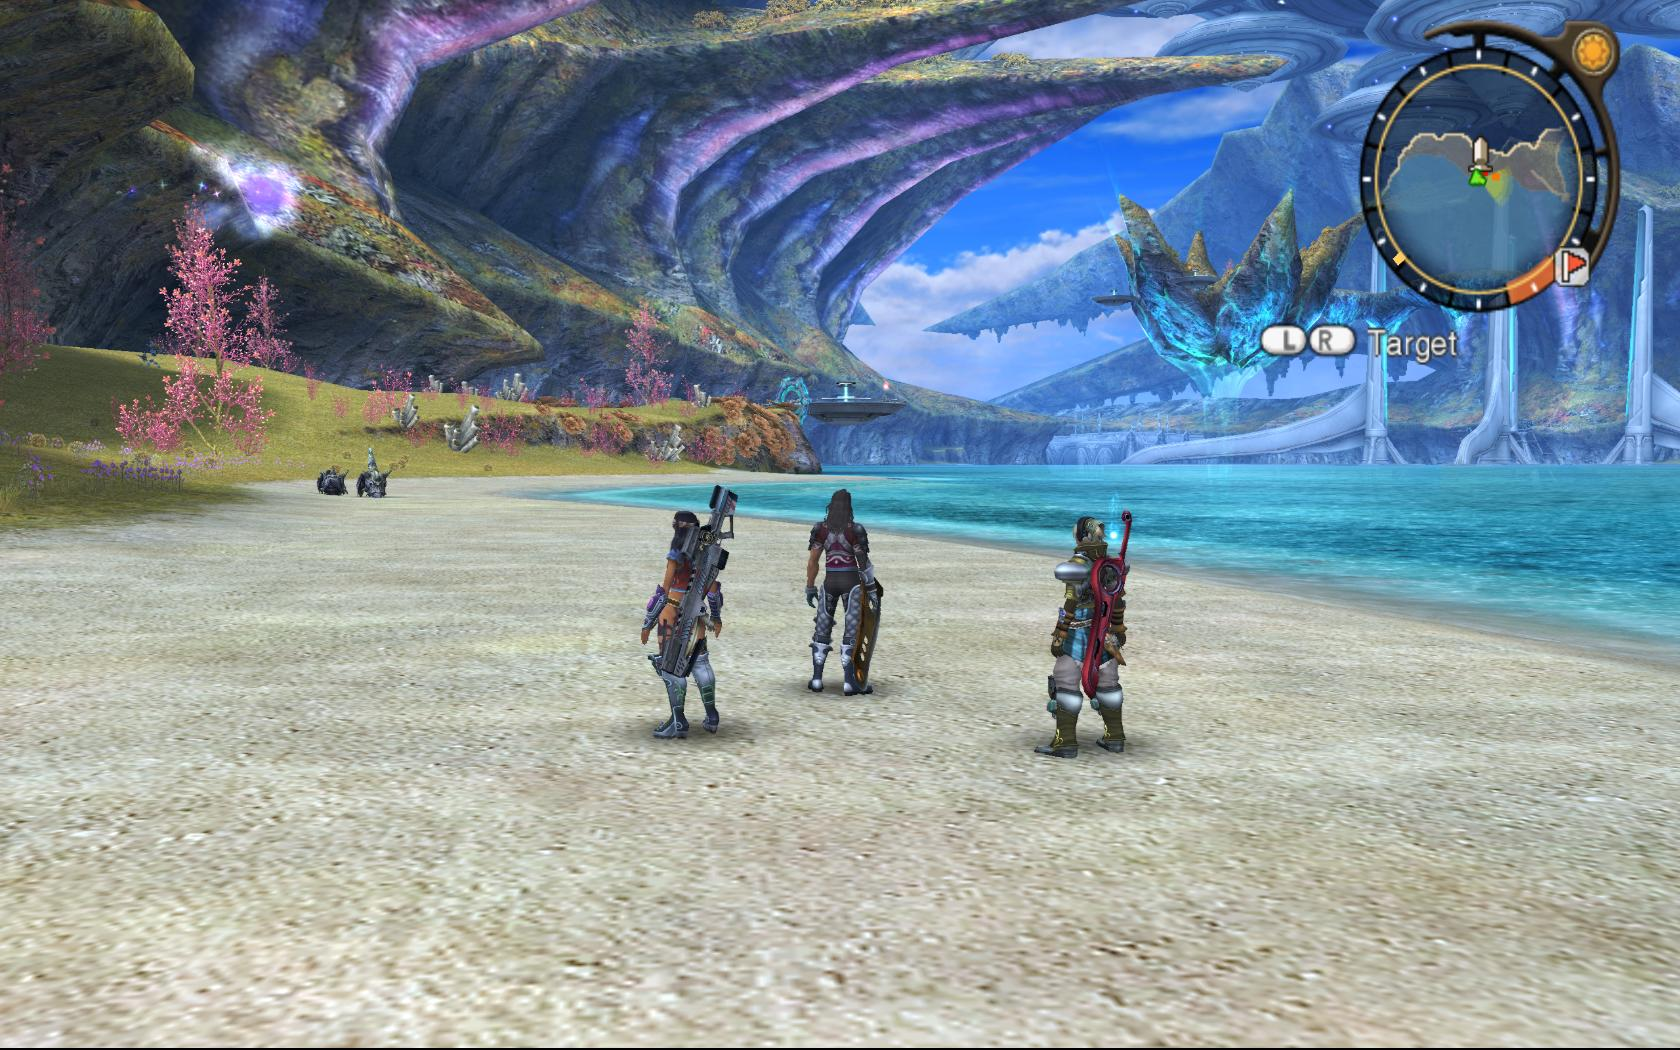 Xenoblade Chronicles Eyrth Sea Screenshot Is The XENOBLADE CHRONICLES Sequel Exactly What WiiU Needs?